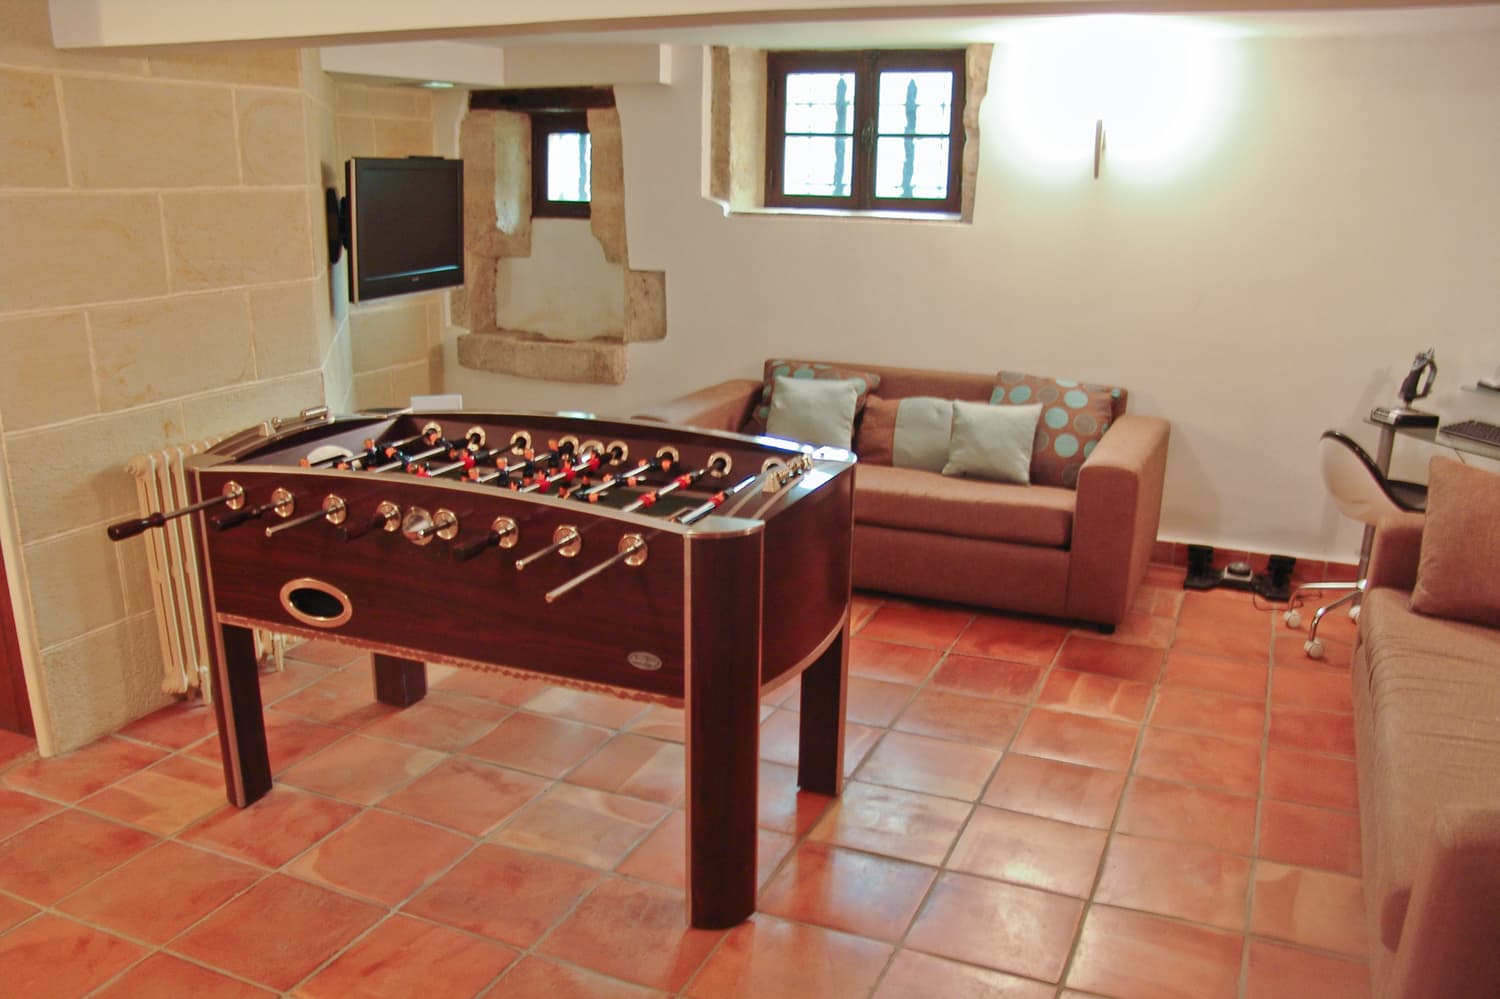 Table football in South West France rental home